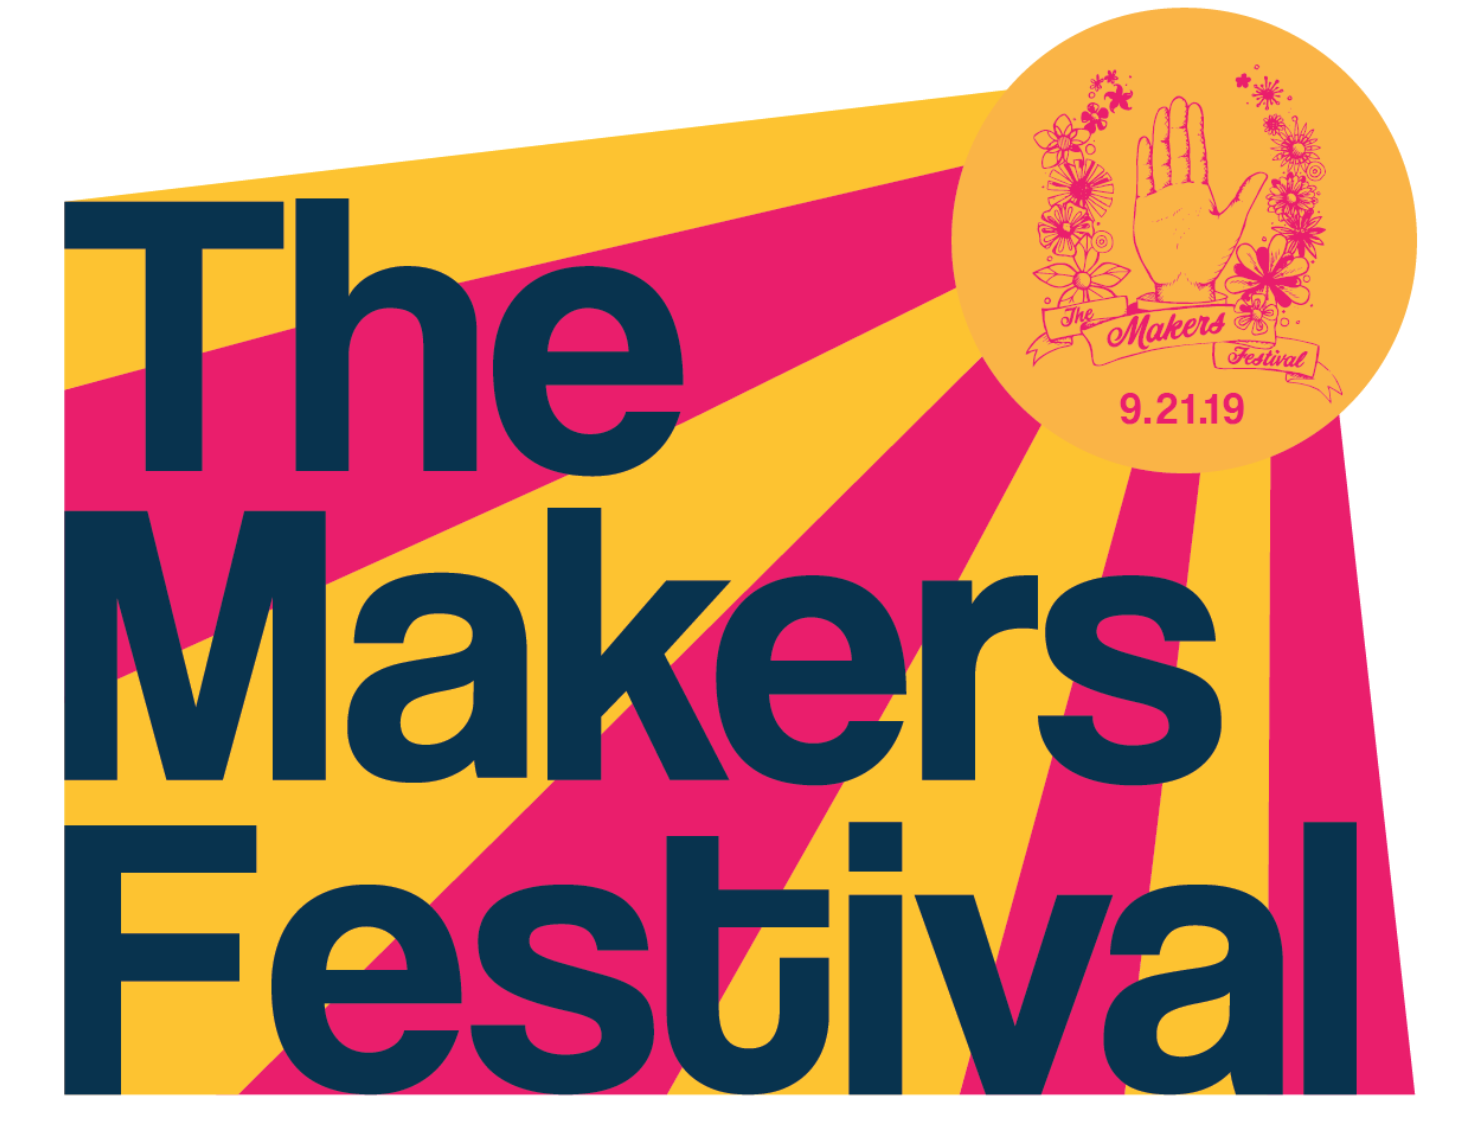 makersfestival_9.21.19.png